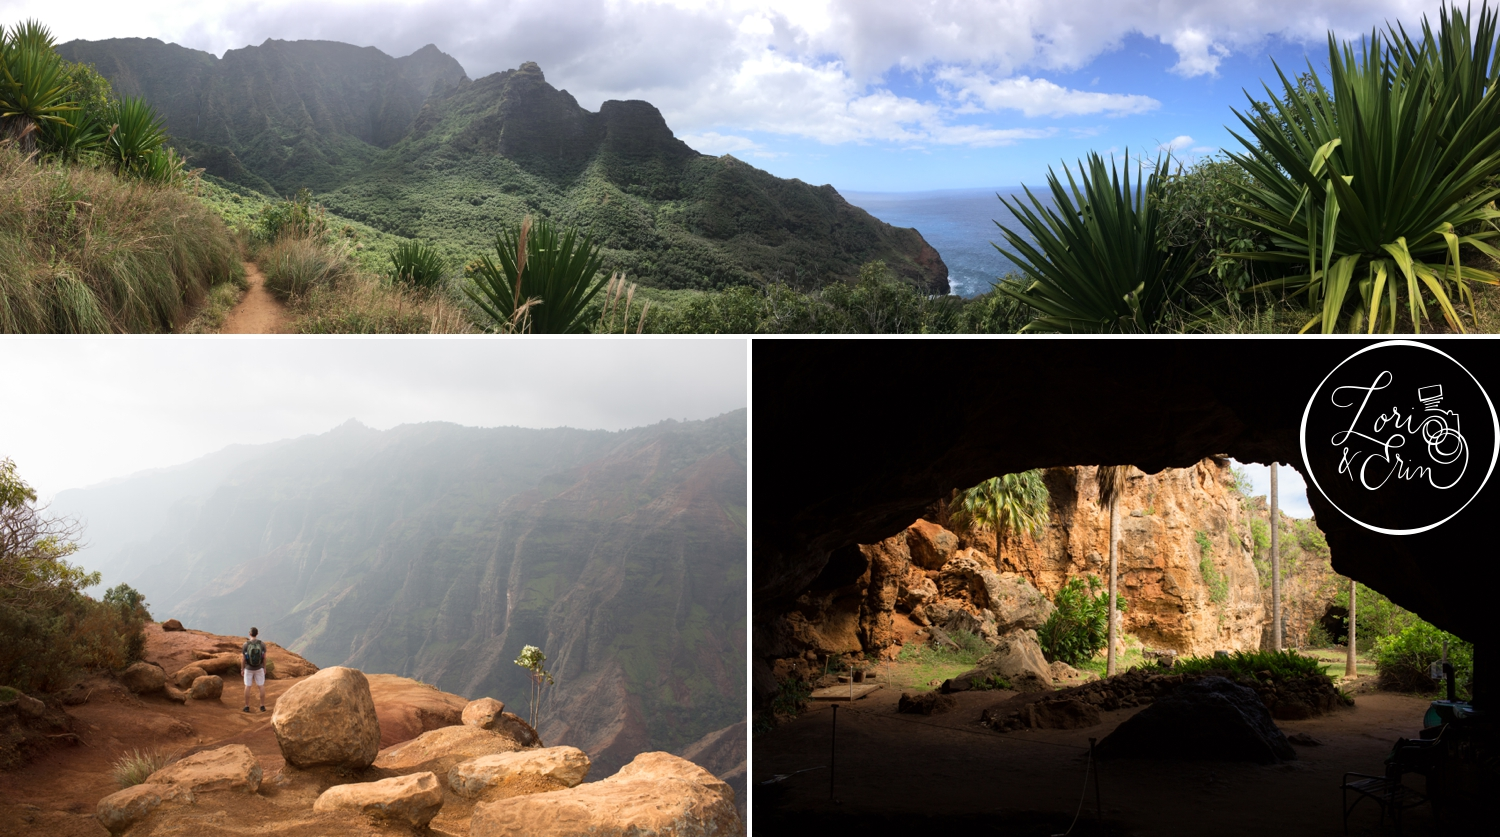 Top: View from the Kalalau Trail, Bottom left: Waimea Canyon and Bottom right: Wakauwahi Cave